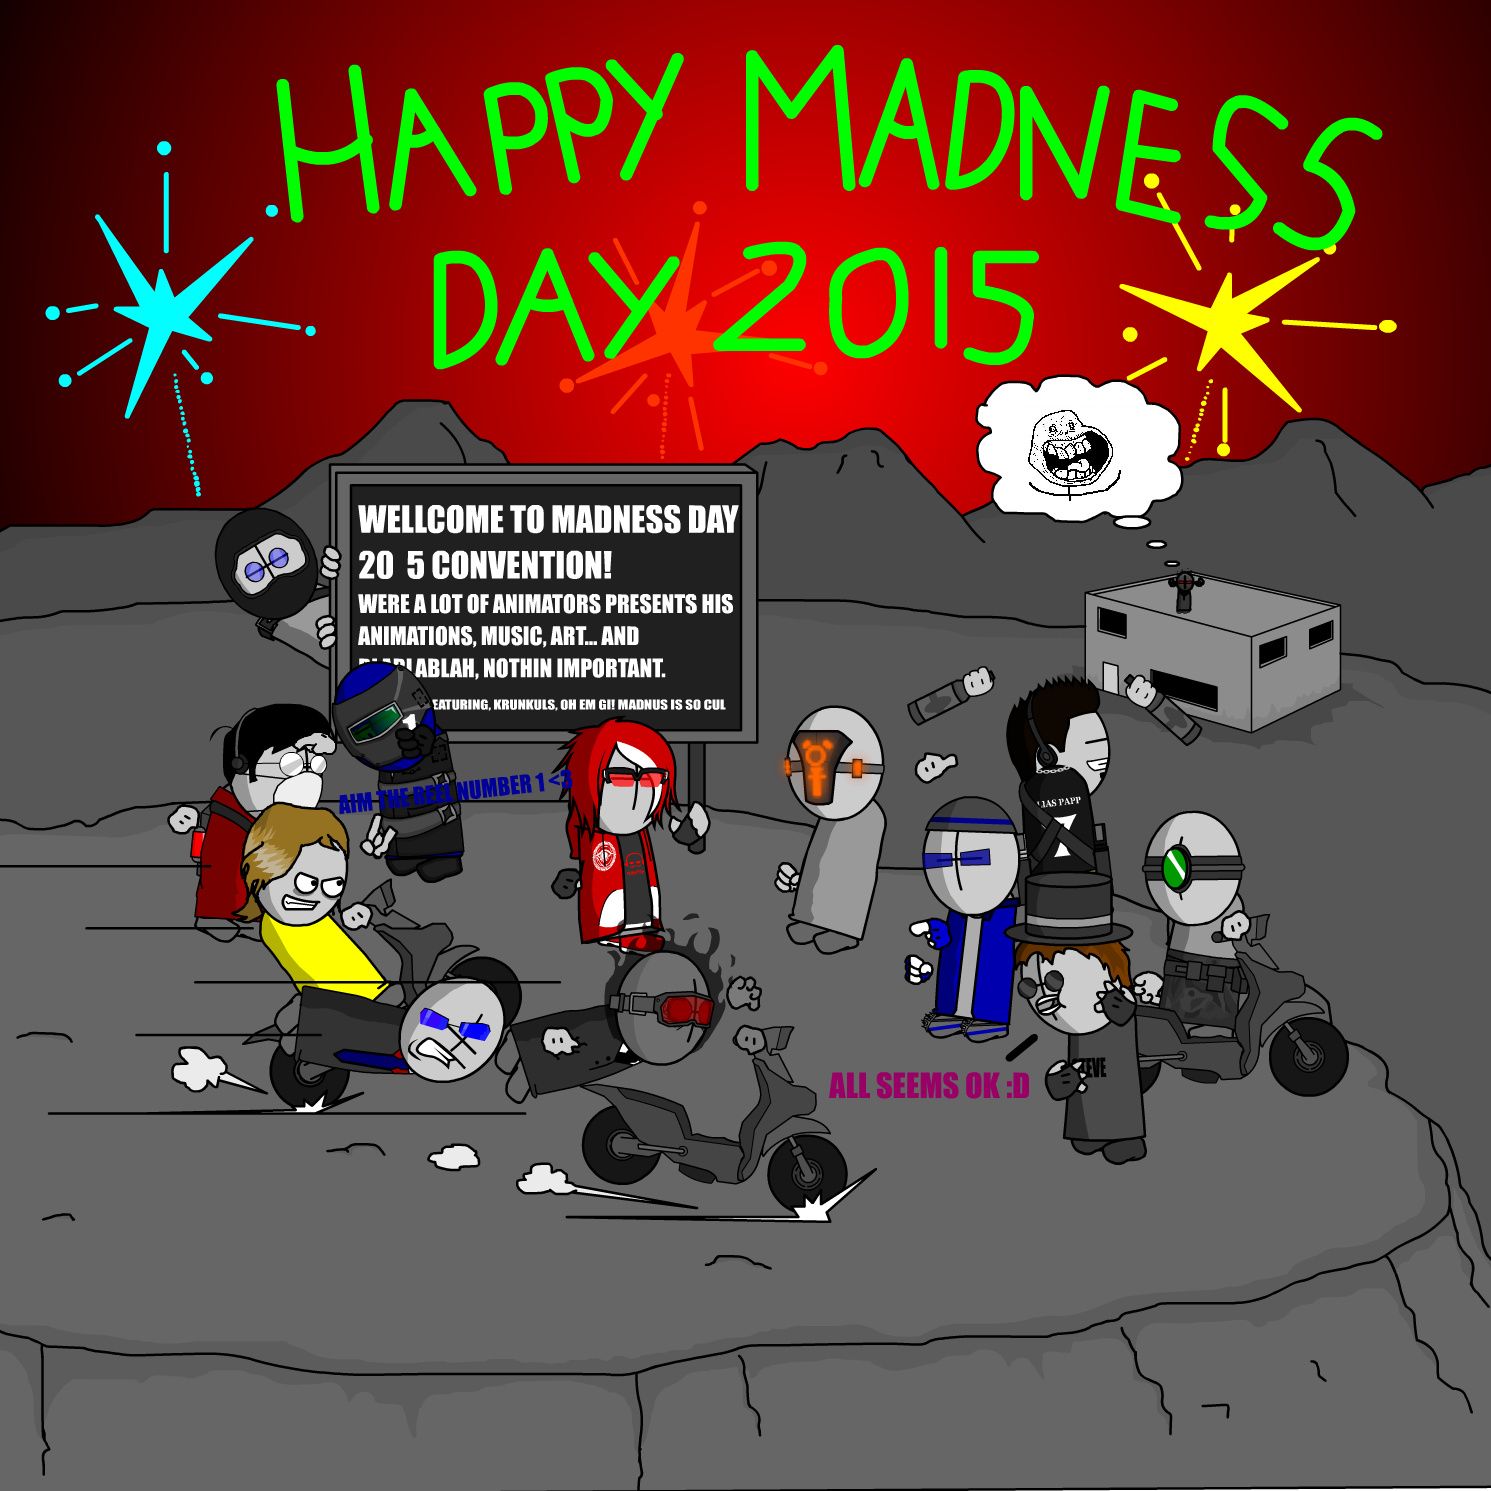 Madness Day Post Card 2015